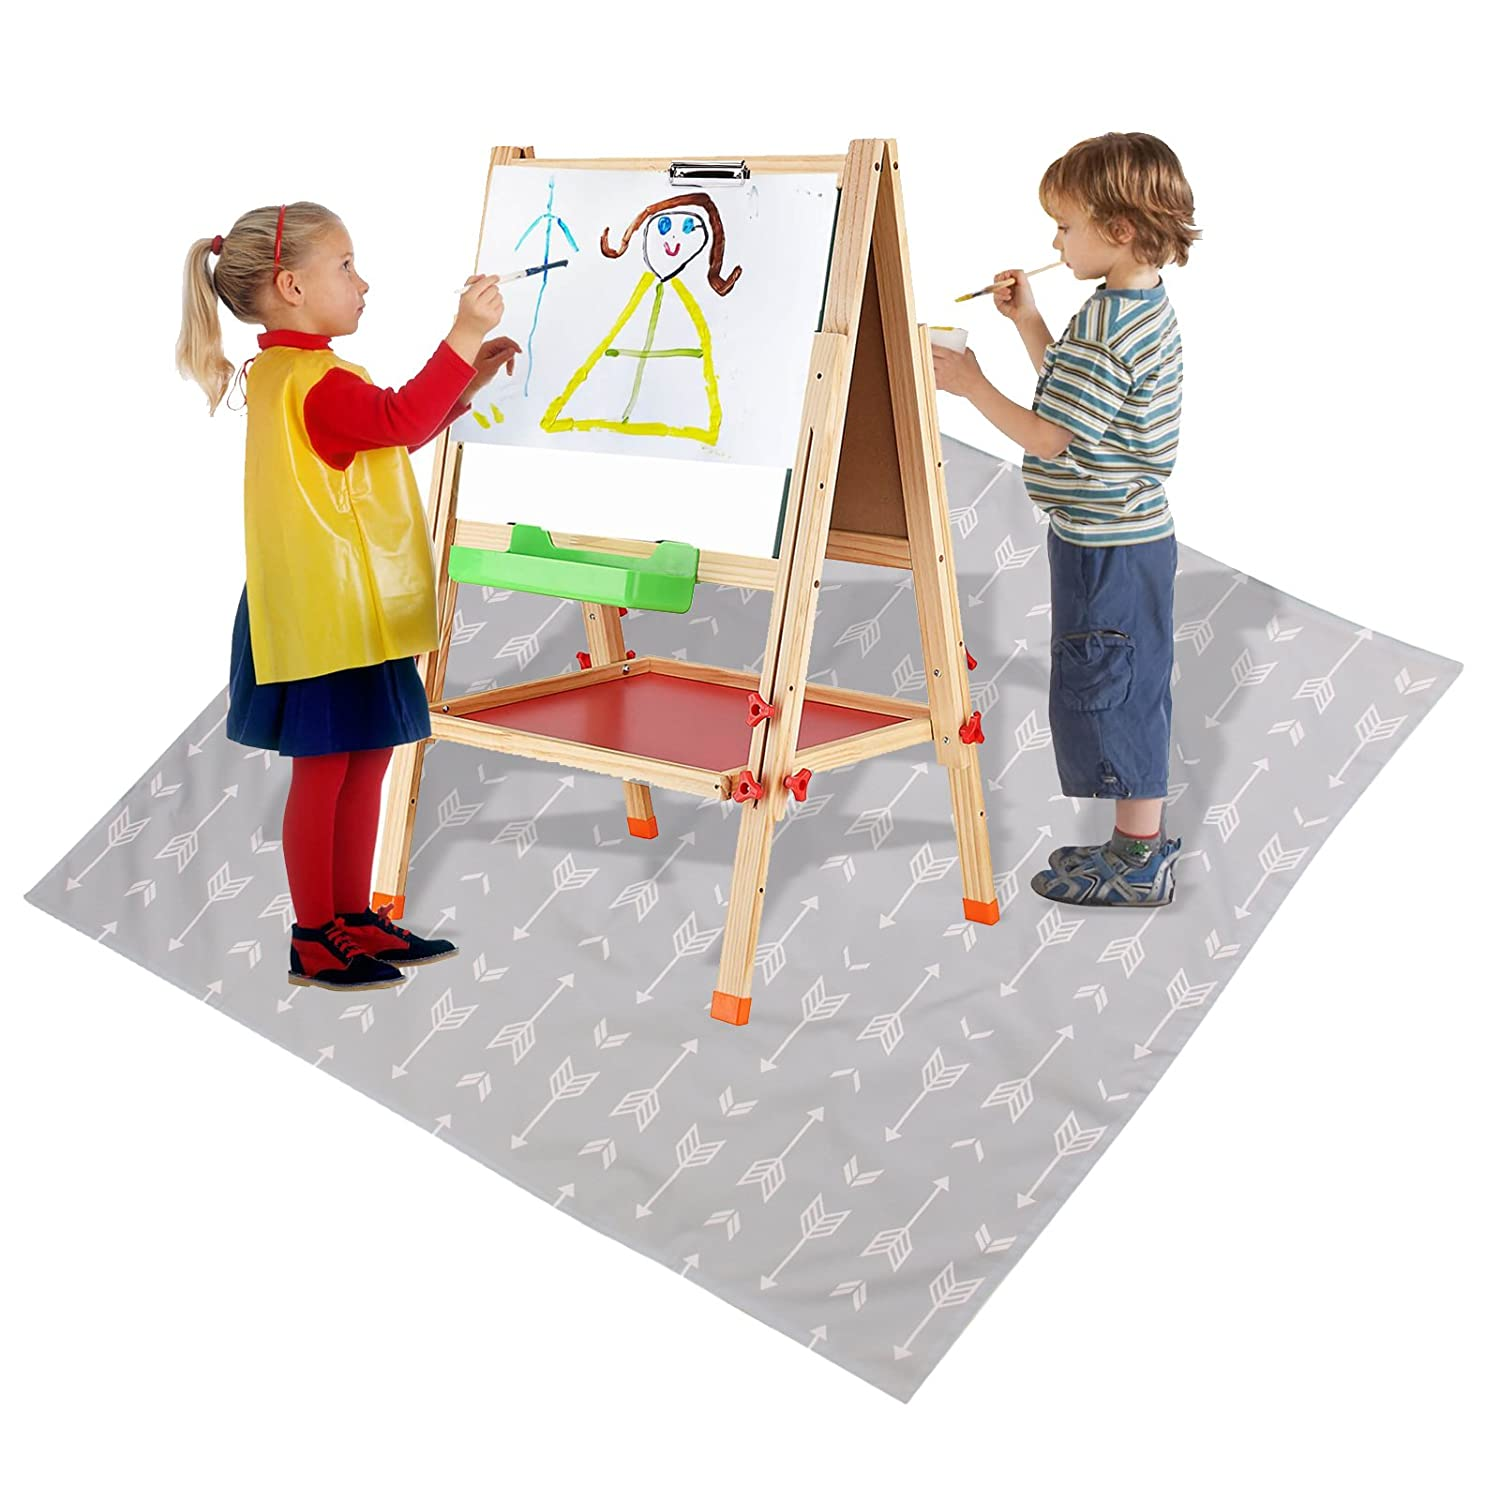 51 Splat Mat For Under High Chair Arts Crafts Wo Baby